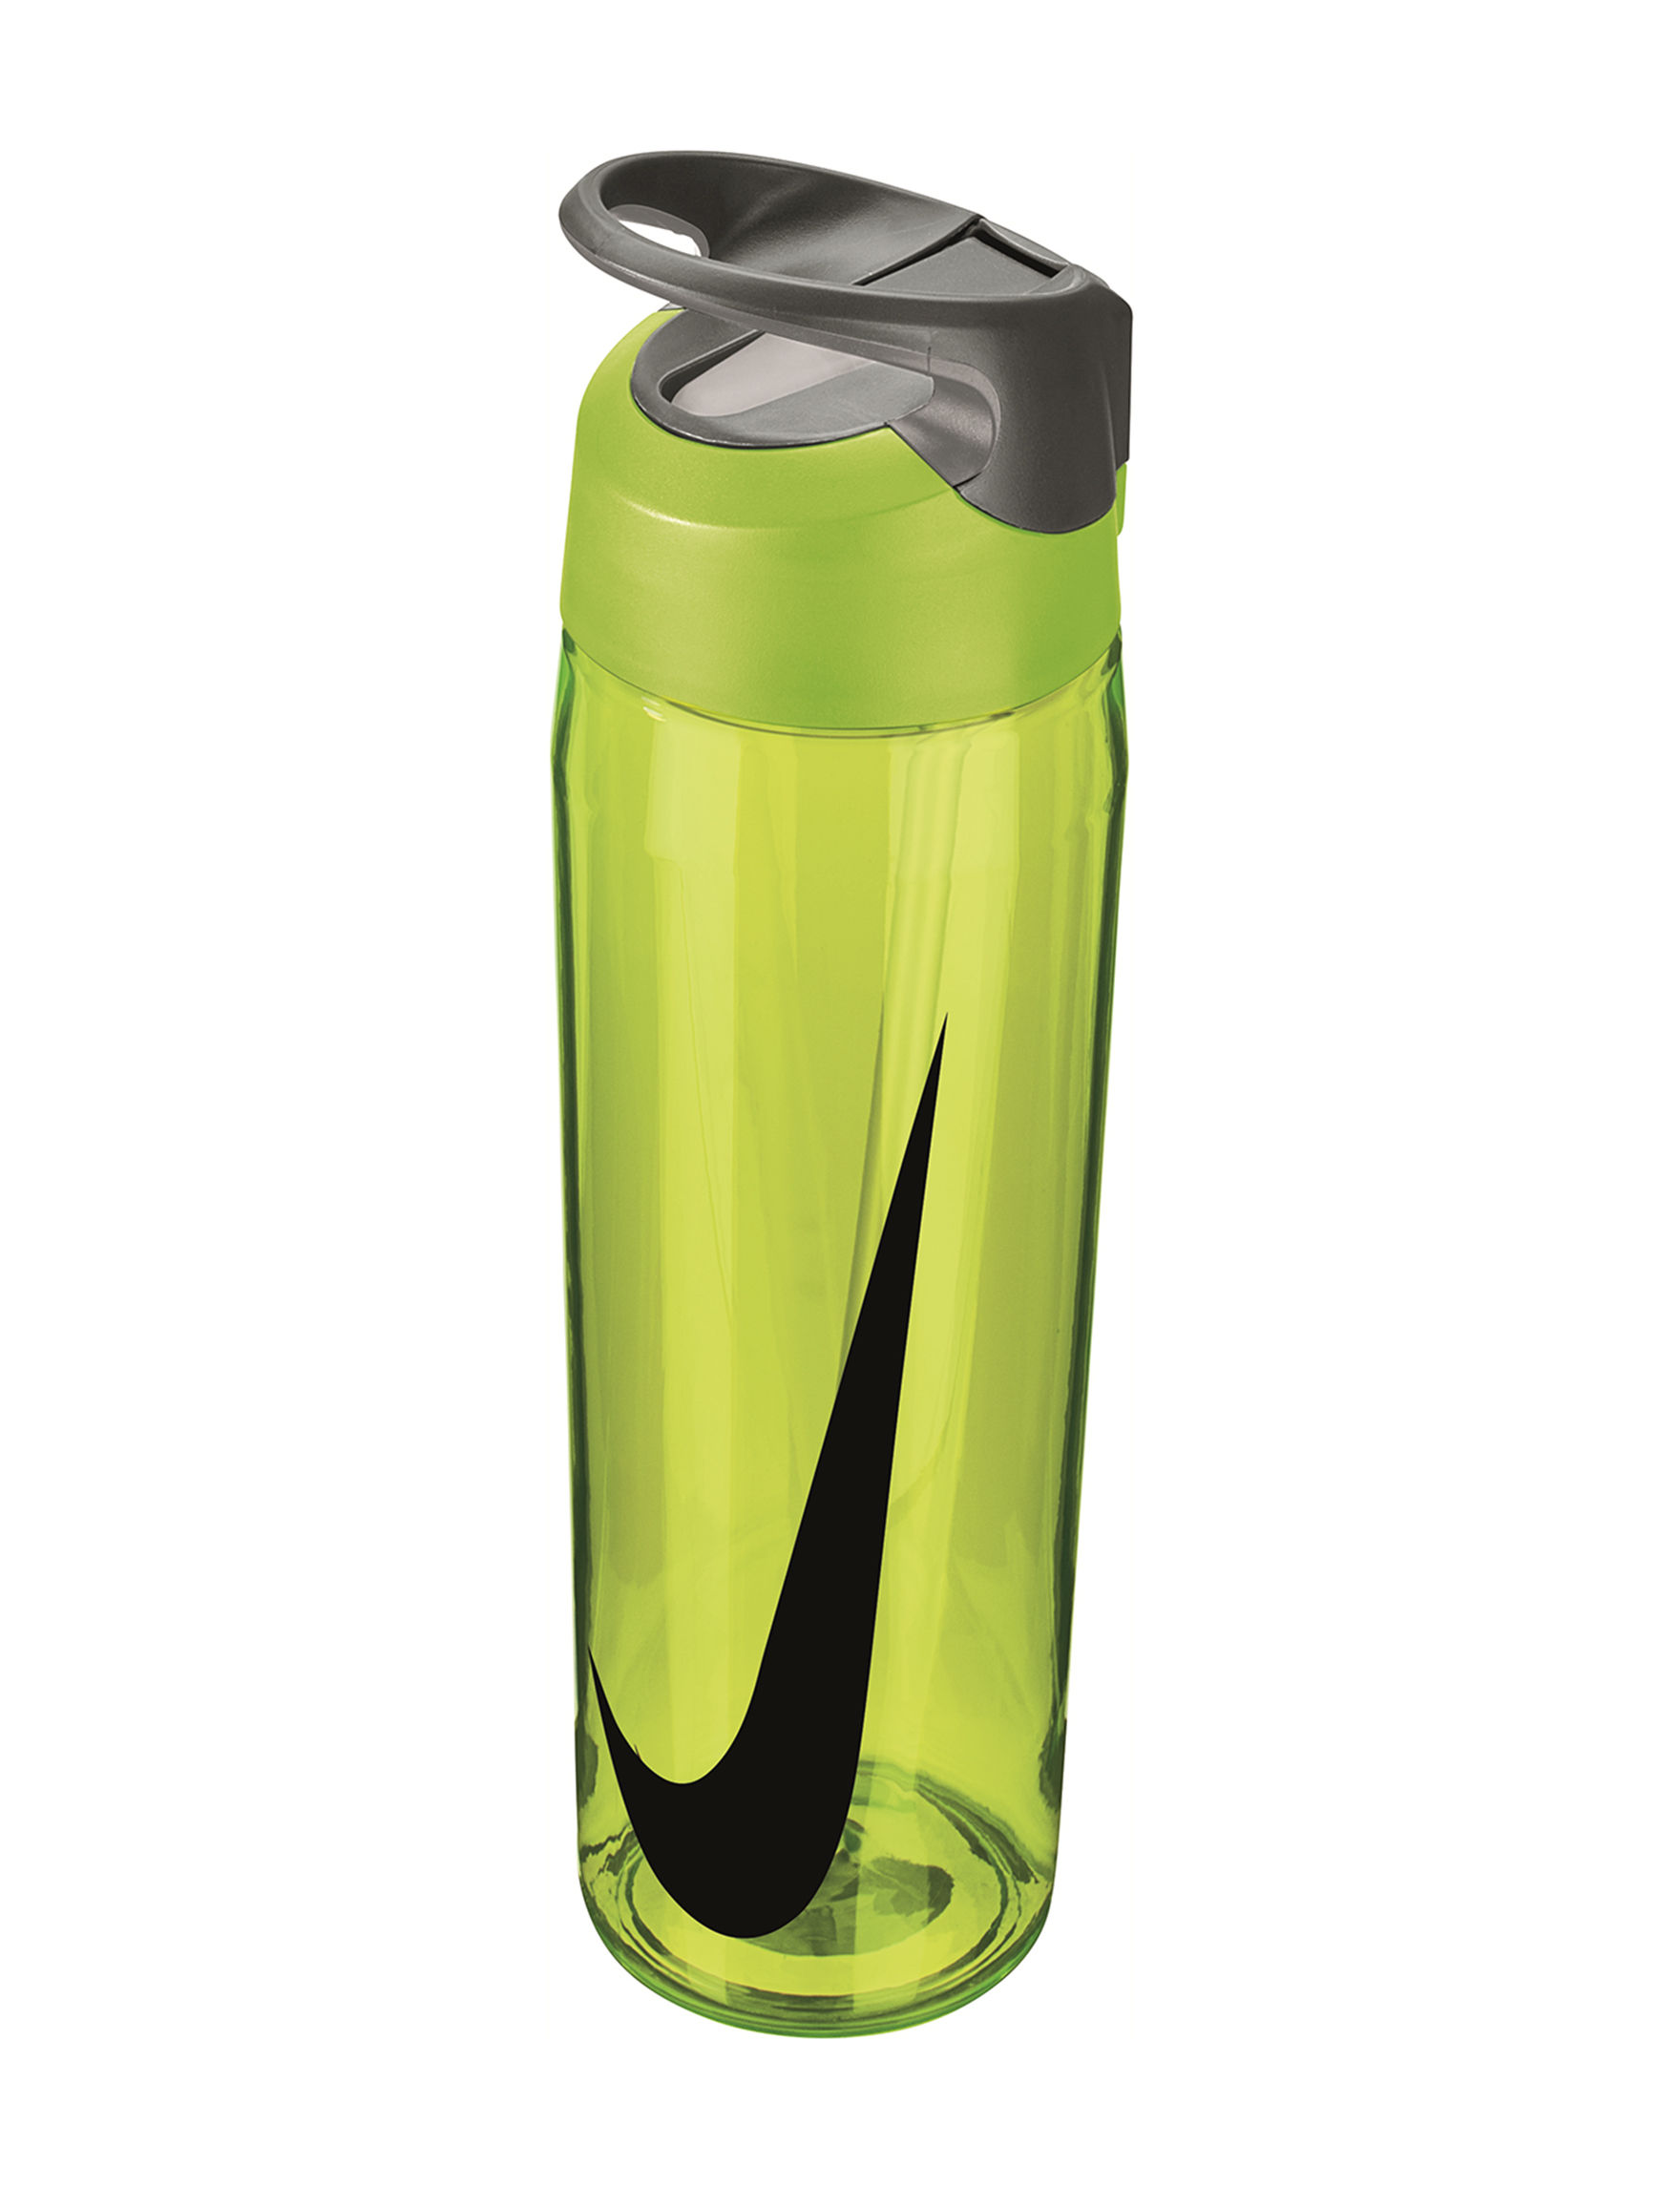 Nike Green Water Bottles Drinkware